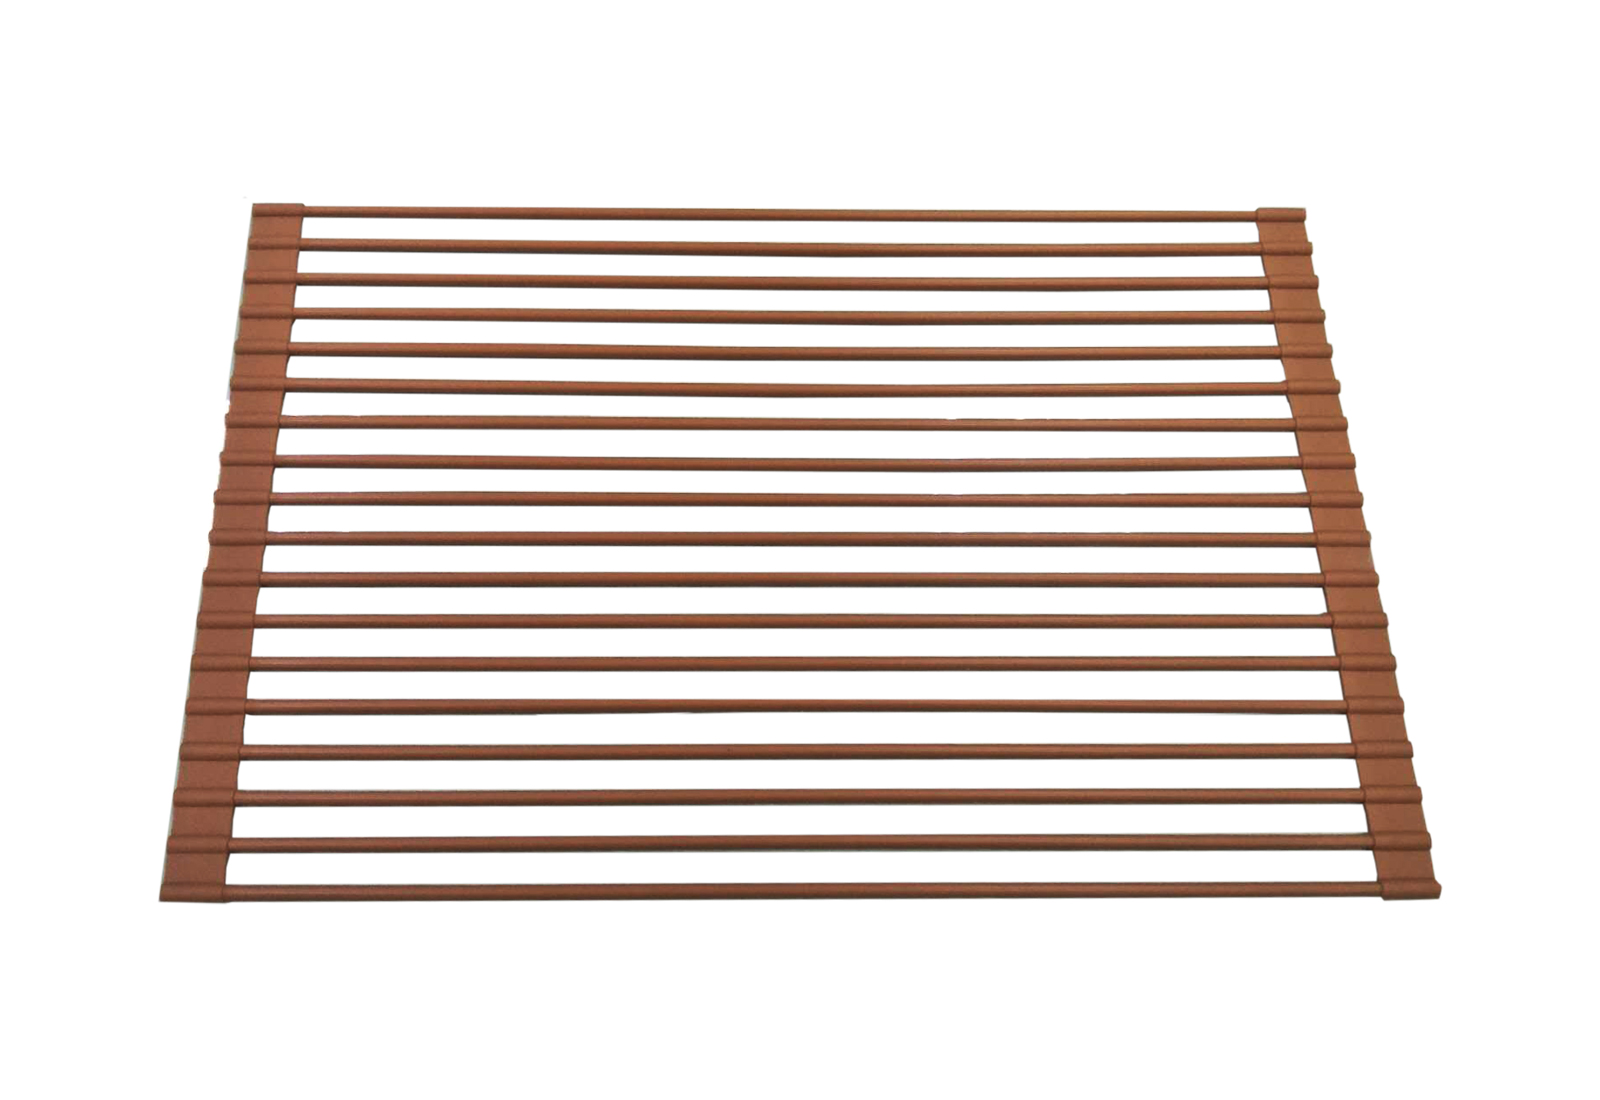 Copper Chef Wonder Rack Product Image